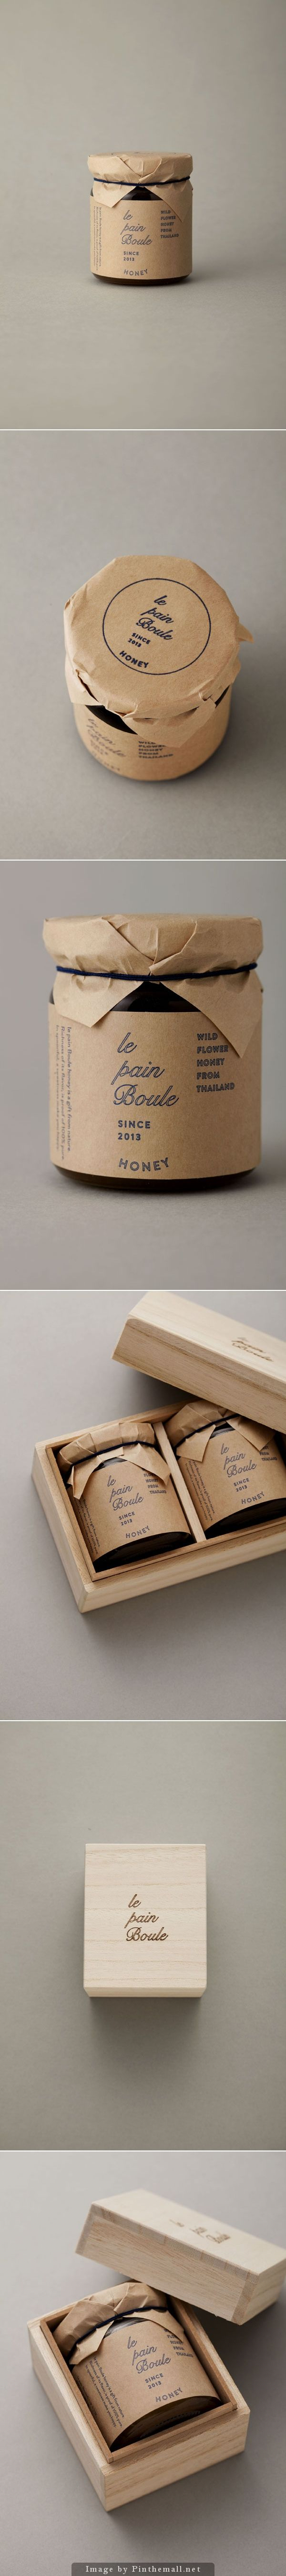 Pretty much anything beautifully finished in Kraft paper with nice fonts gets my vote.